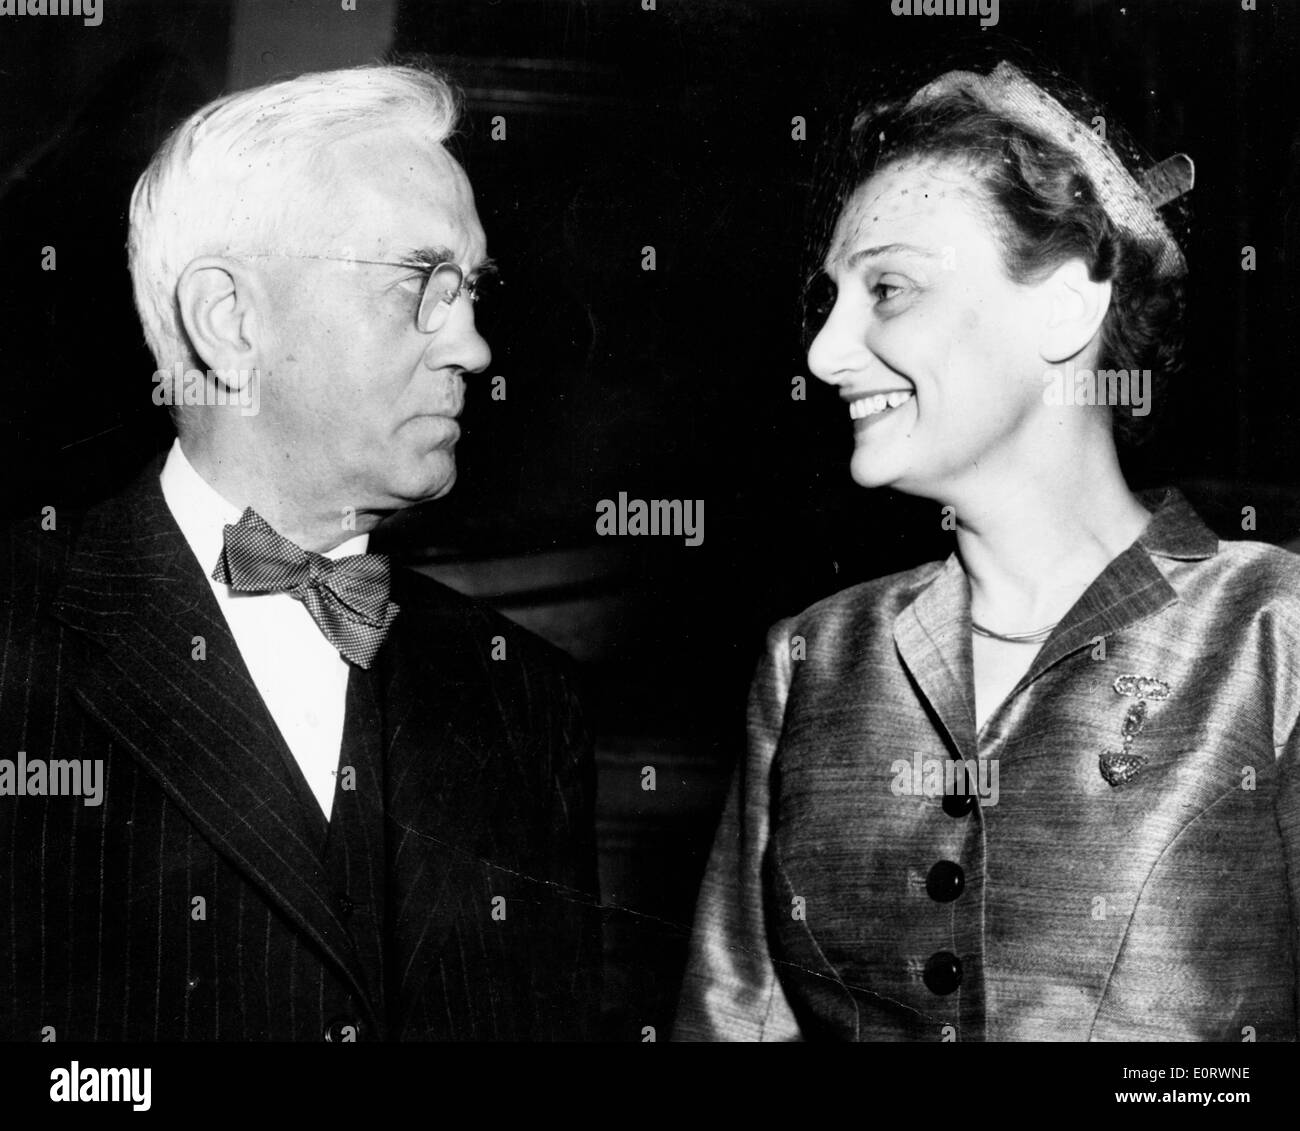 Scientist Alexander Fleming with wife Amalia - Stock Image